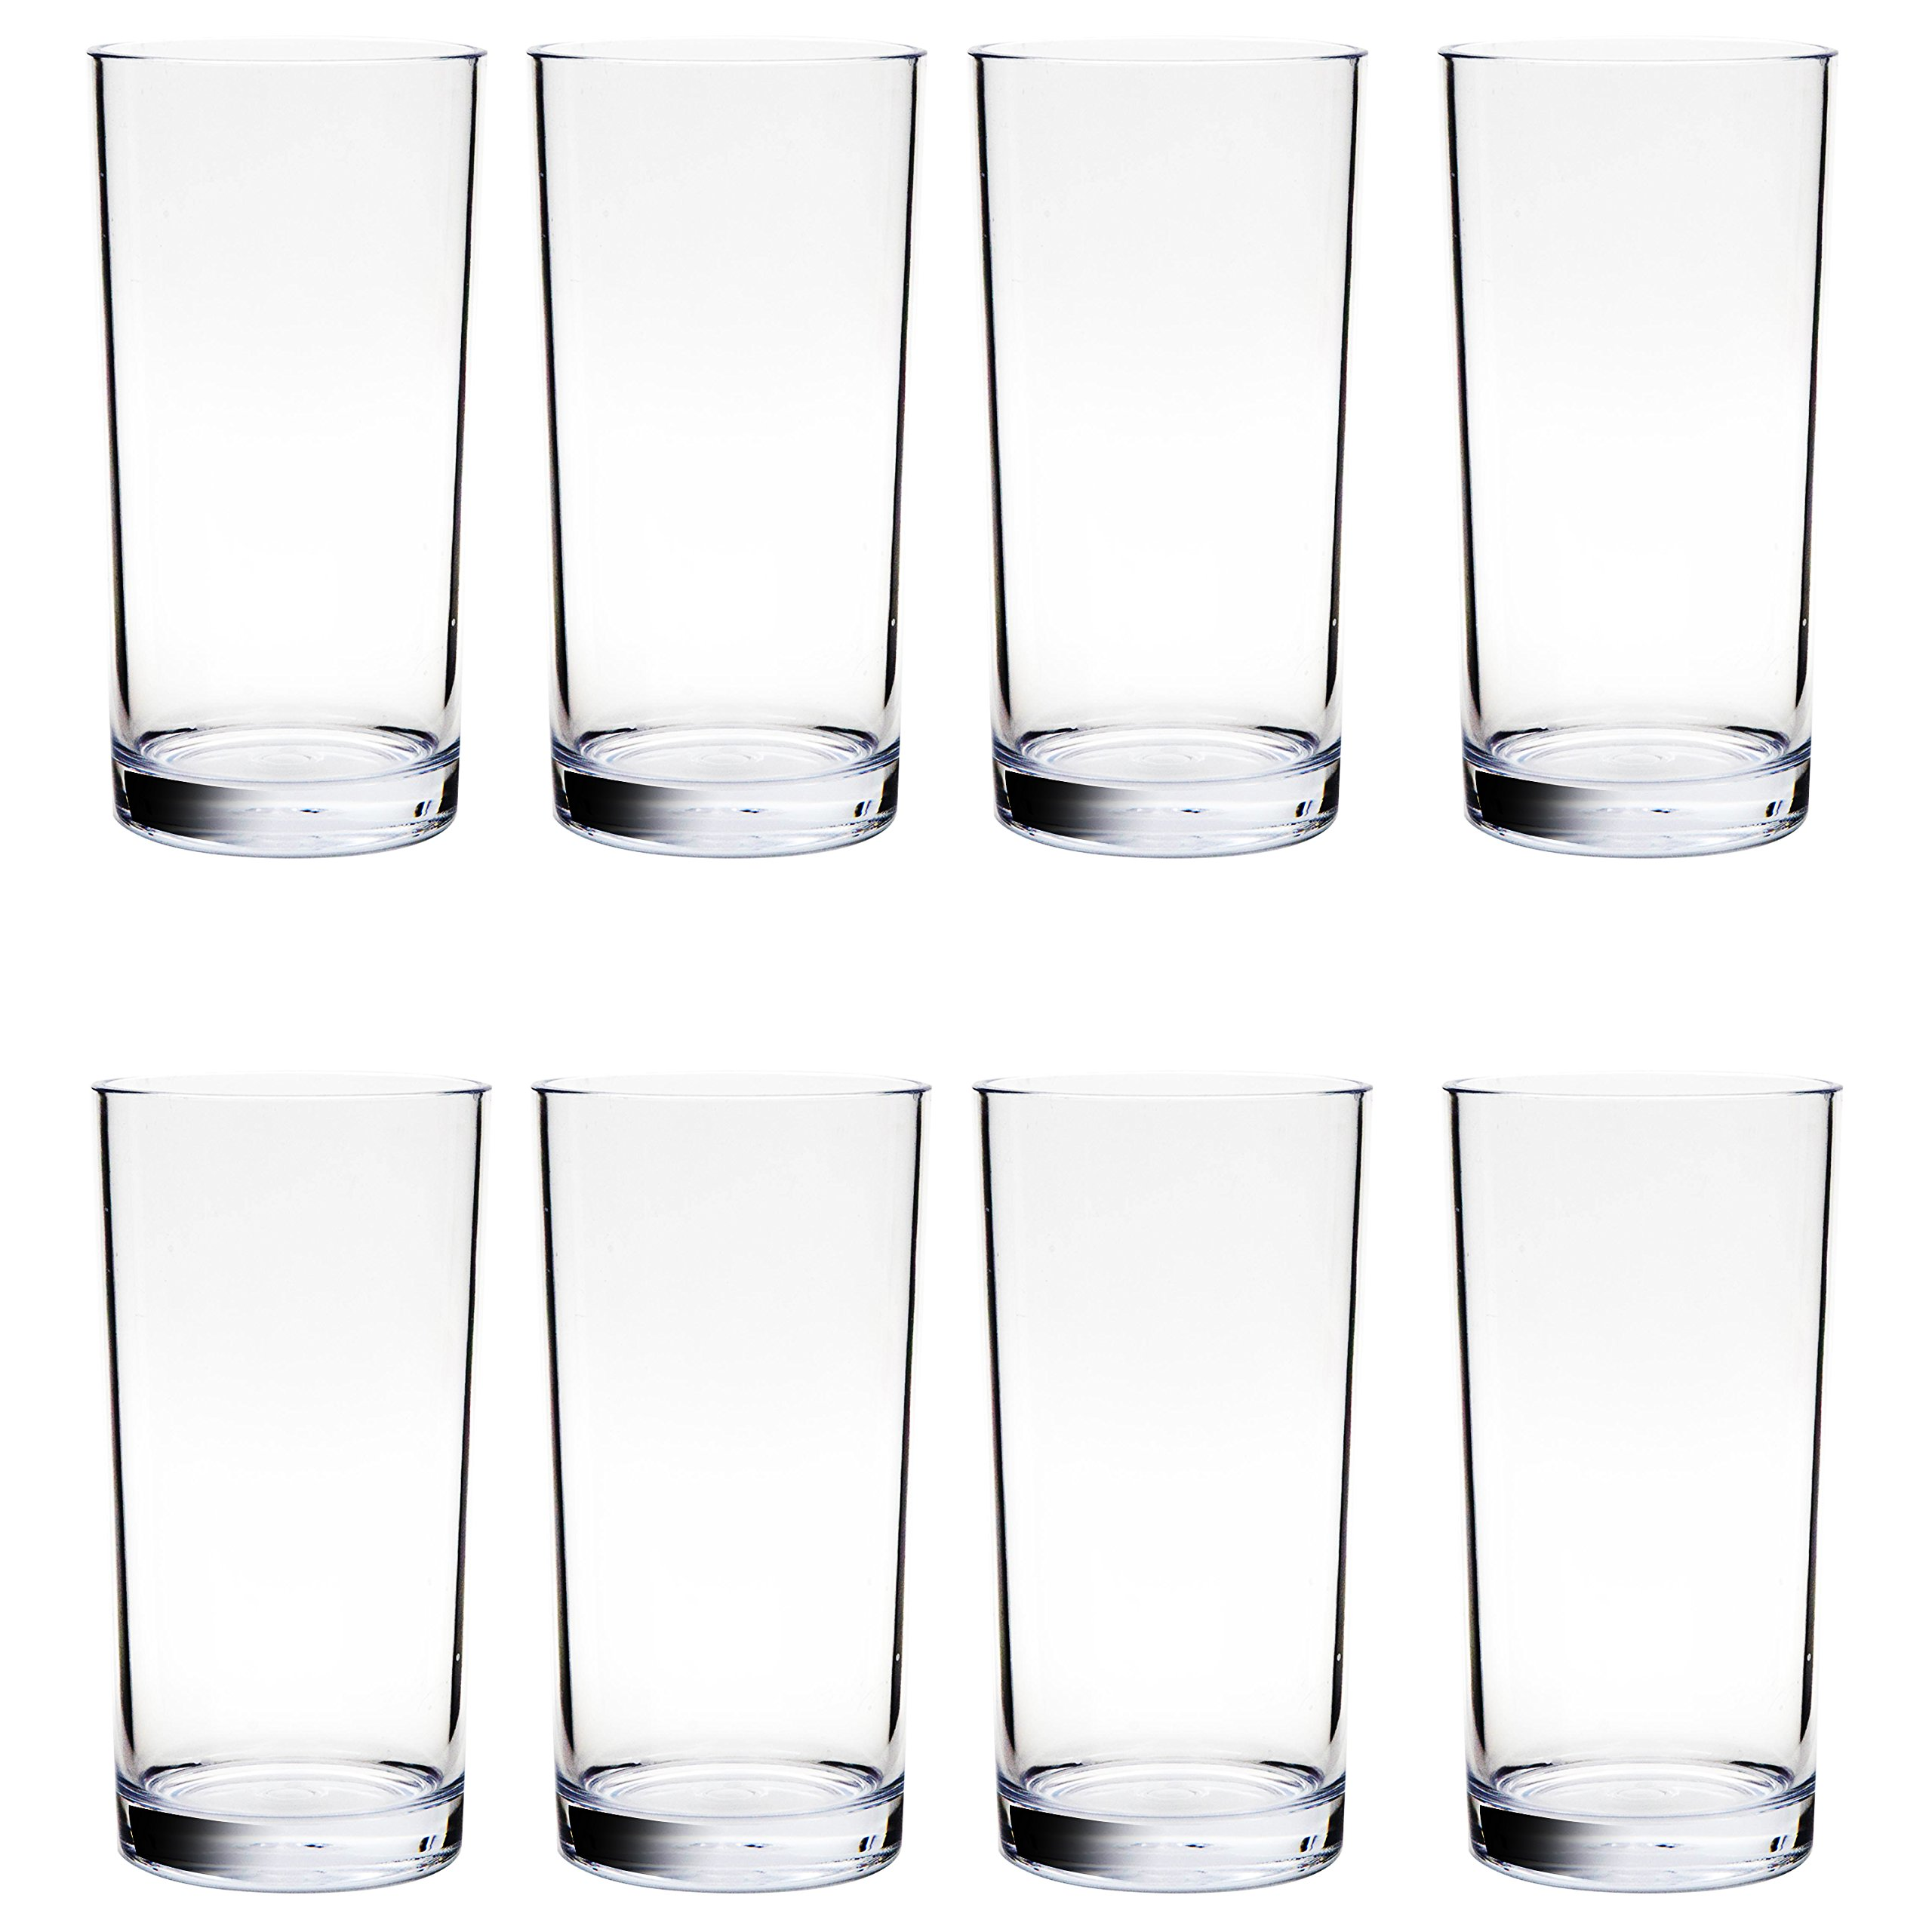 Youngever 16 ounce Shatterproof Premium Quality Plastic Water Tumbler, Plastic glasses, Reusable Plastic Cups, Unbreakable Glasses, Plastic Tumblers, Set of 8